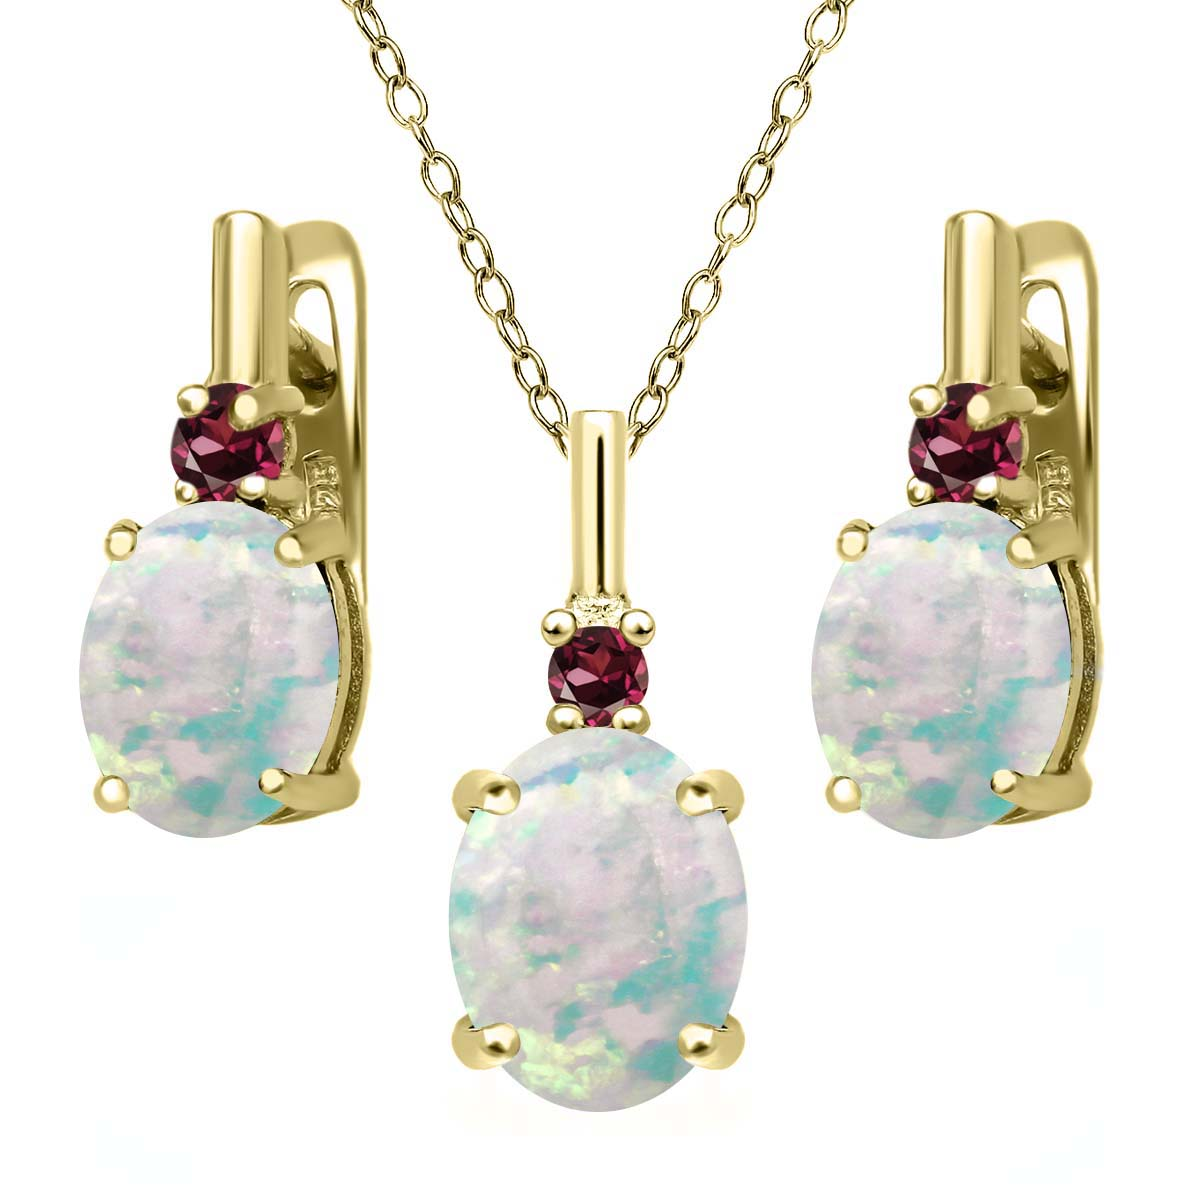 4.89ct Simulated Opal Rhodolite Garnet 18K Yellow Gold Plated Silver Jewelry Set by